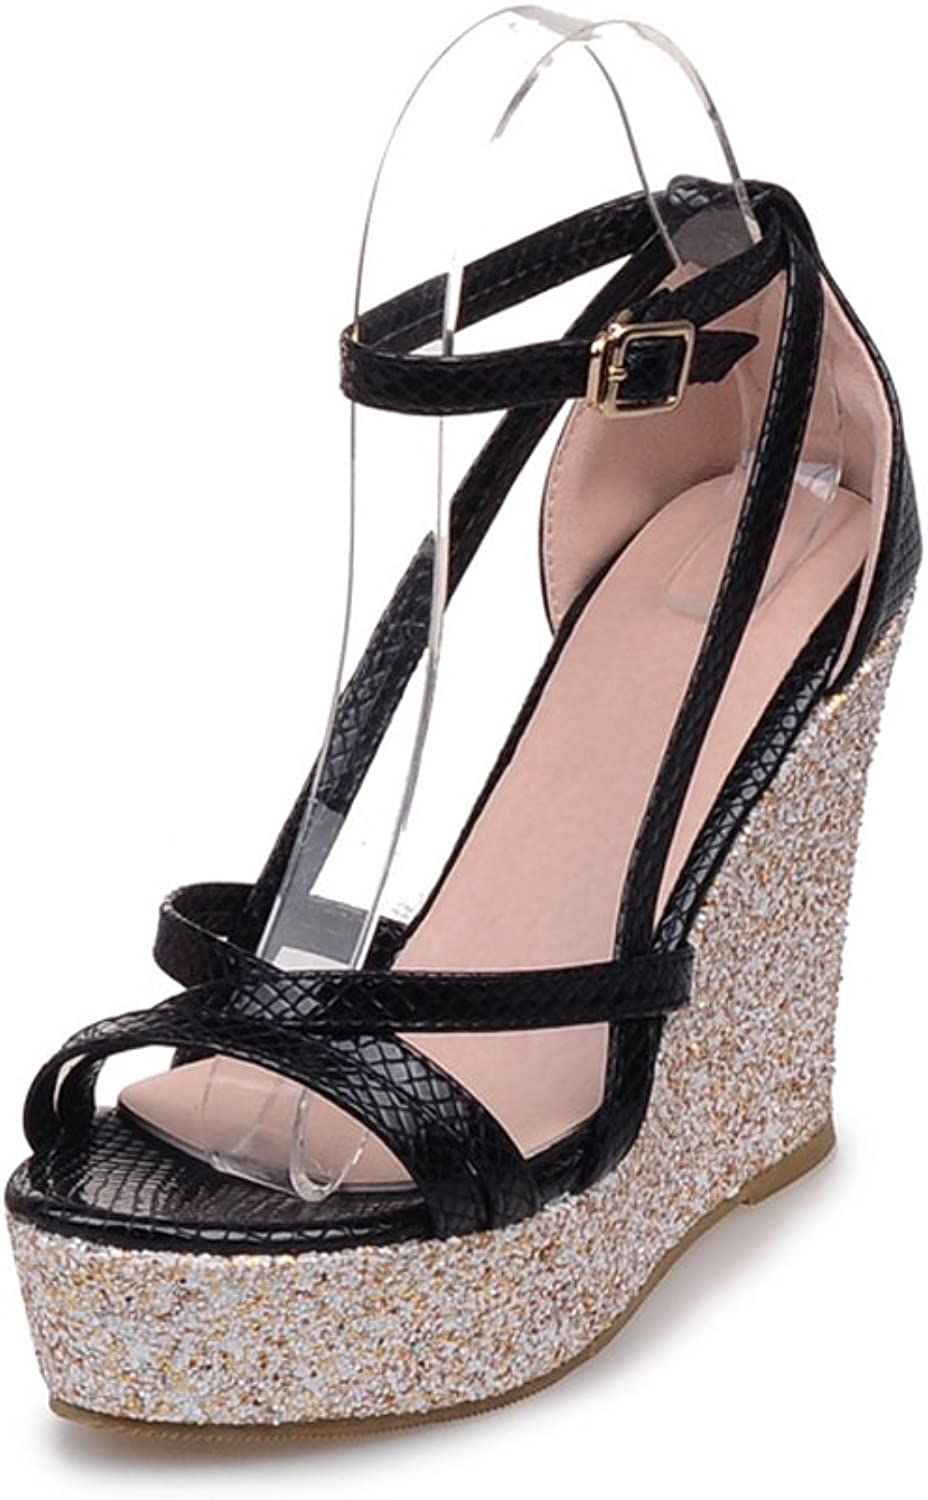 Leanna@ Summer Fashion Bohemian High Platform Wedge Snakeskin Strappy Ankle Wrap Open Toe Sandals